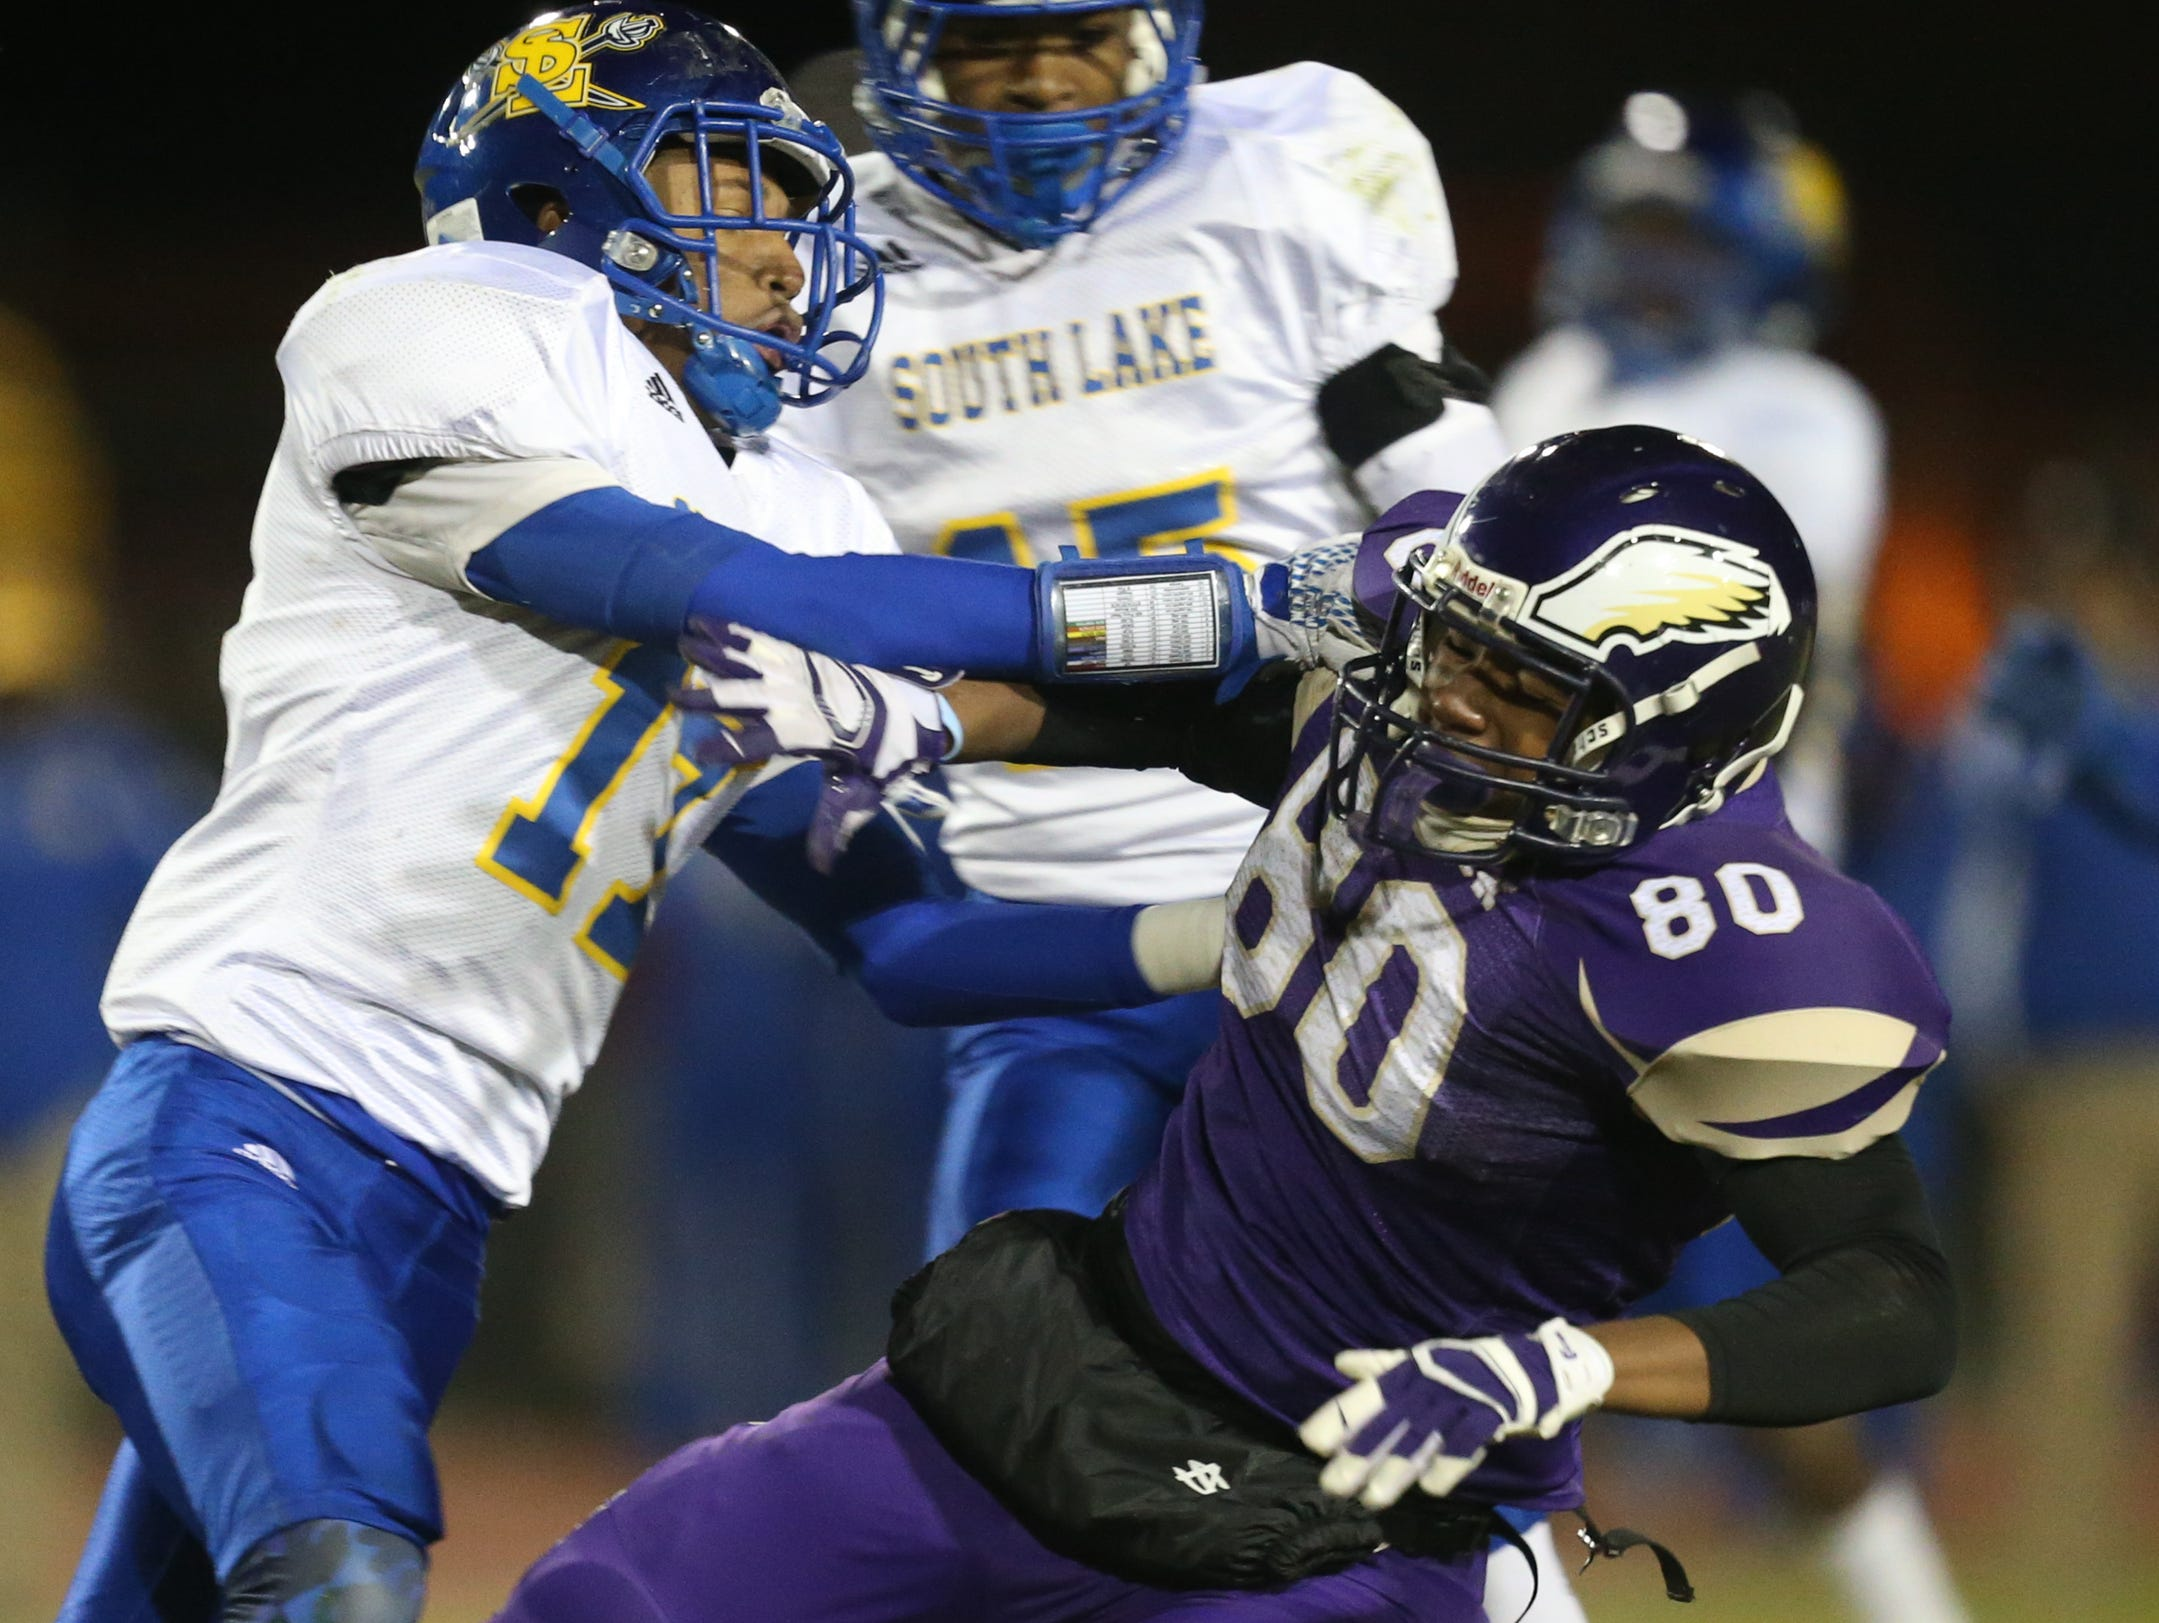 Madison Heights Madison high schools Bacari Marino is hit by South Lake high schools Anthony Morgan during first half action Friday, October 16, 2015 in Madison Heights Michigan.